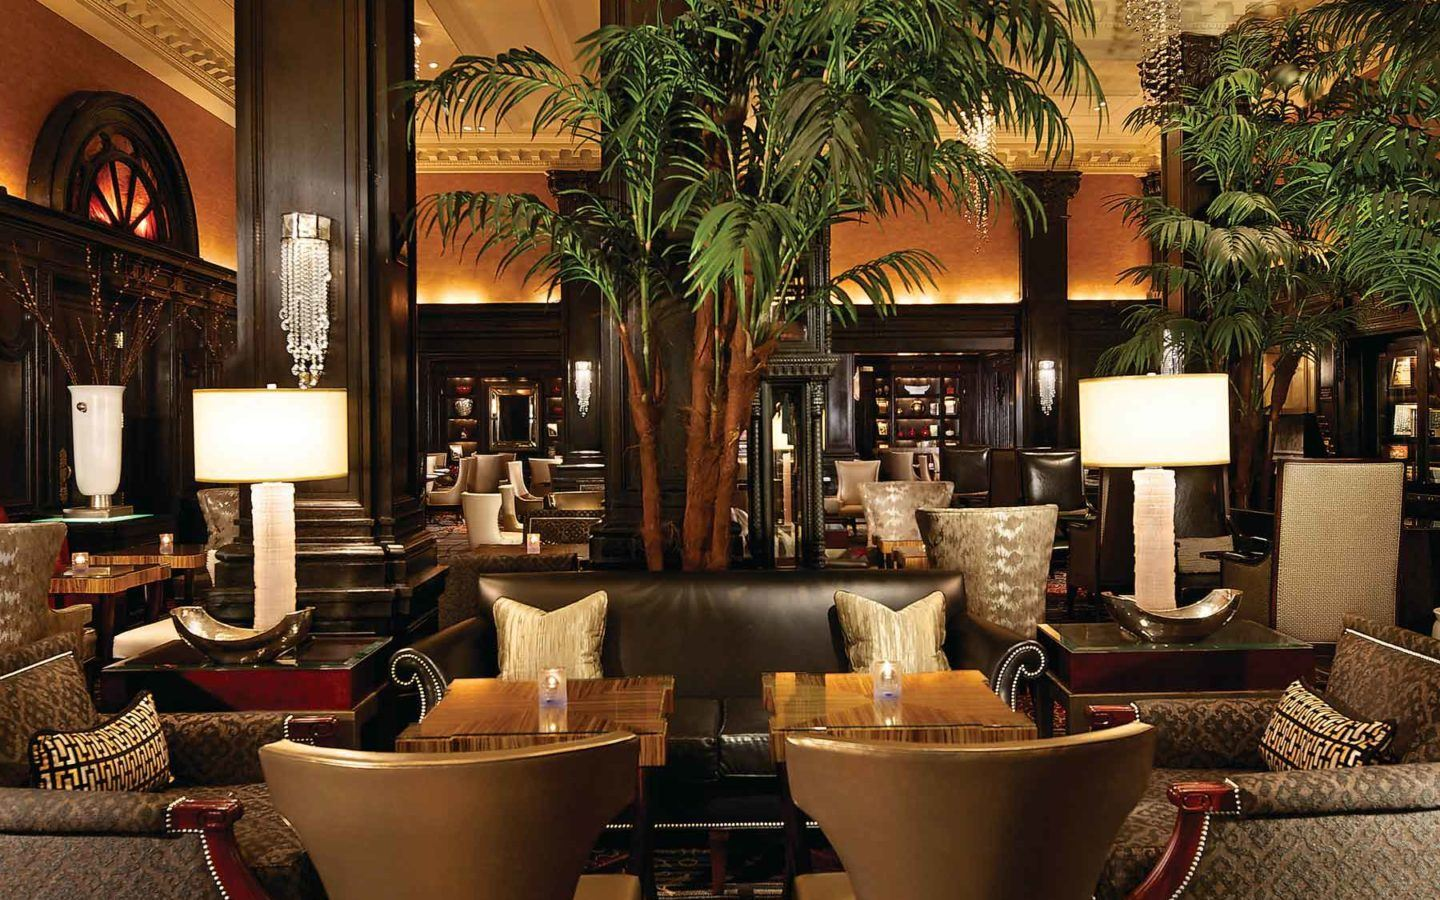 black leather sofa and arm chairs in the lobby lounge amongst green foliage